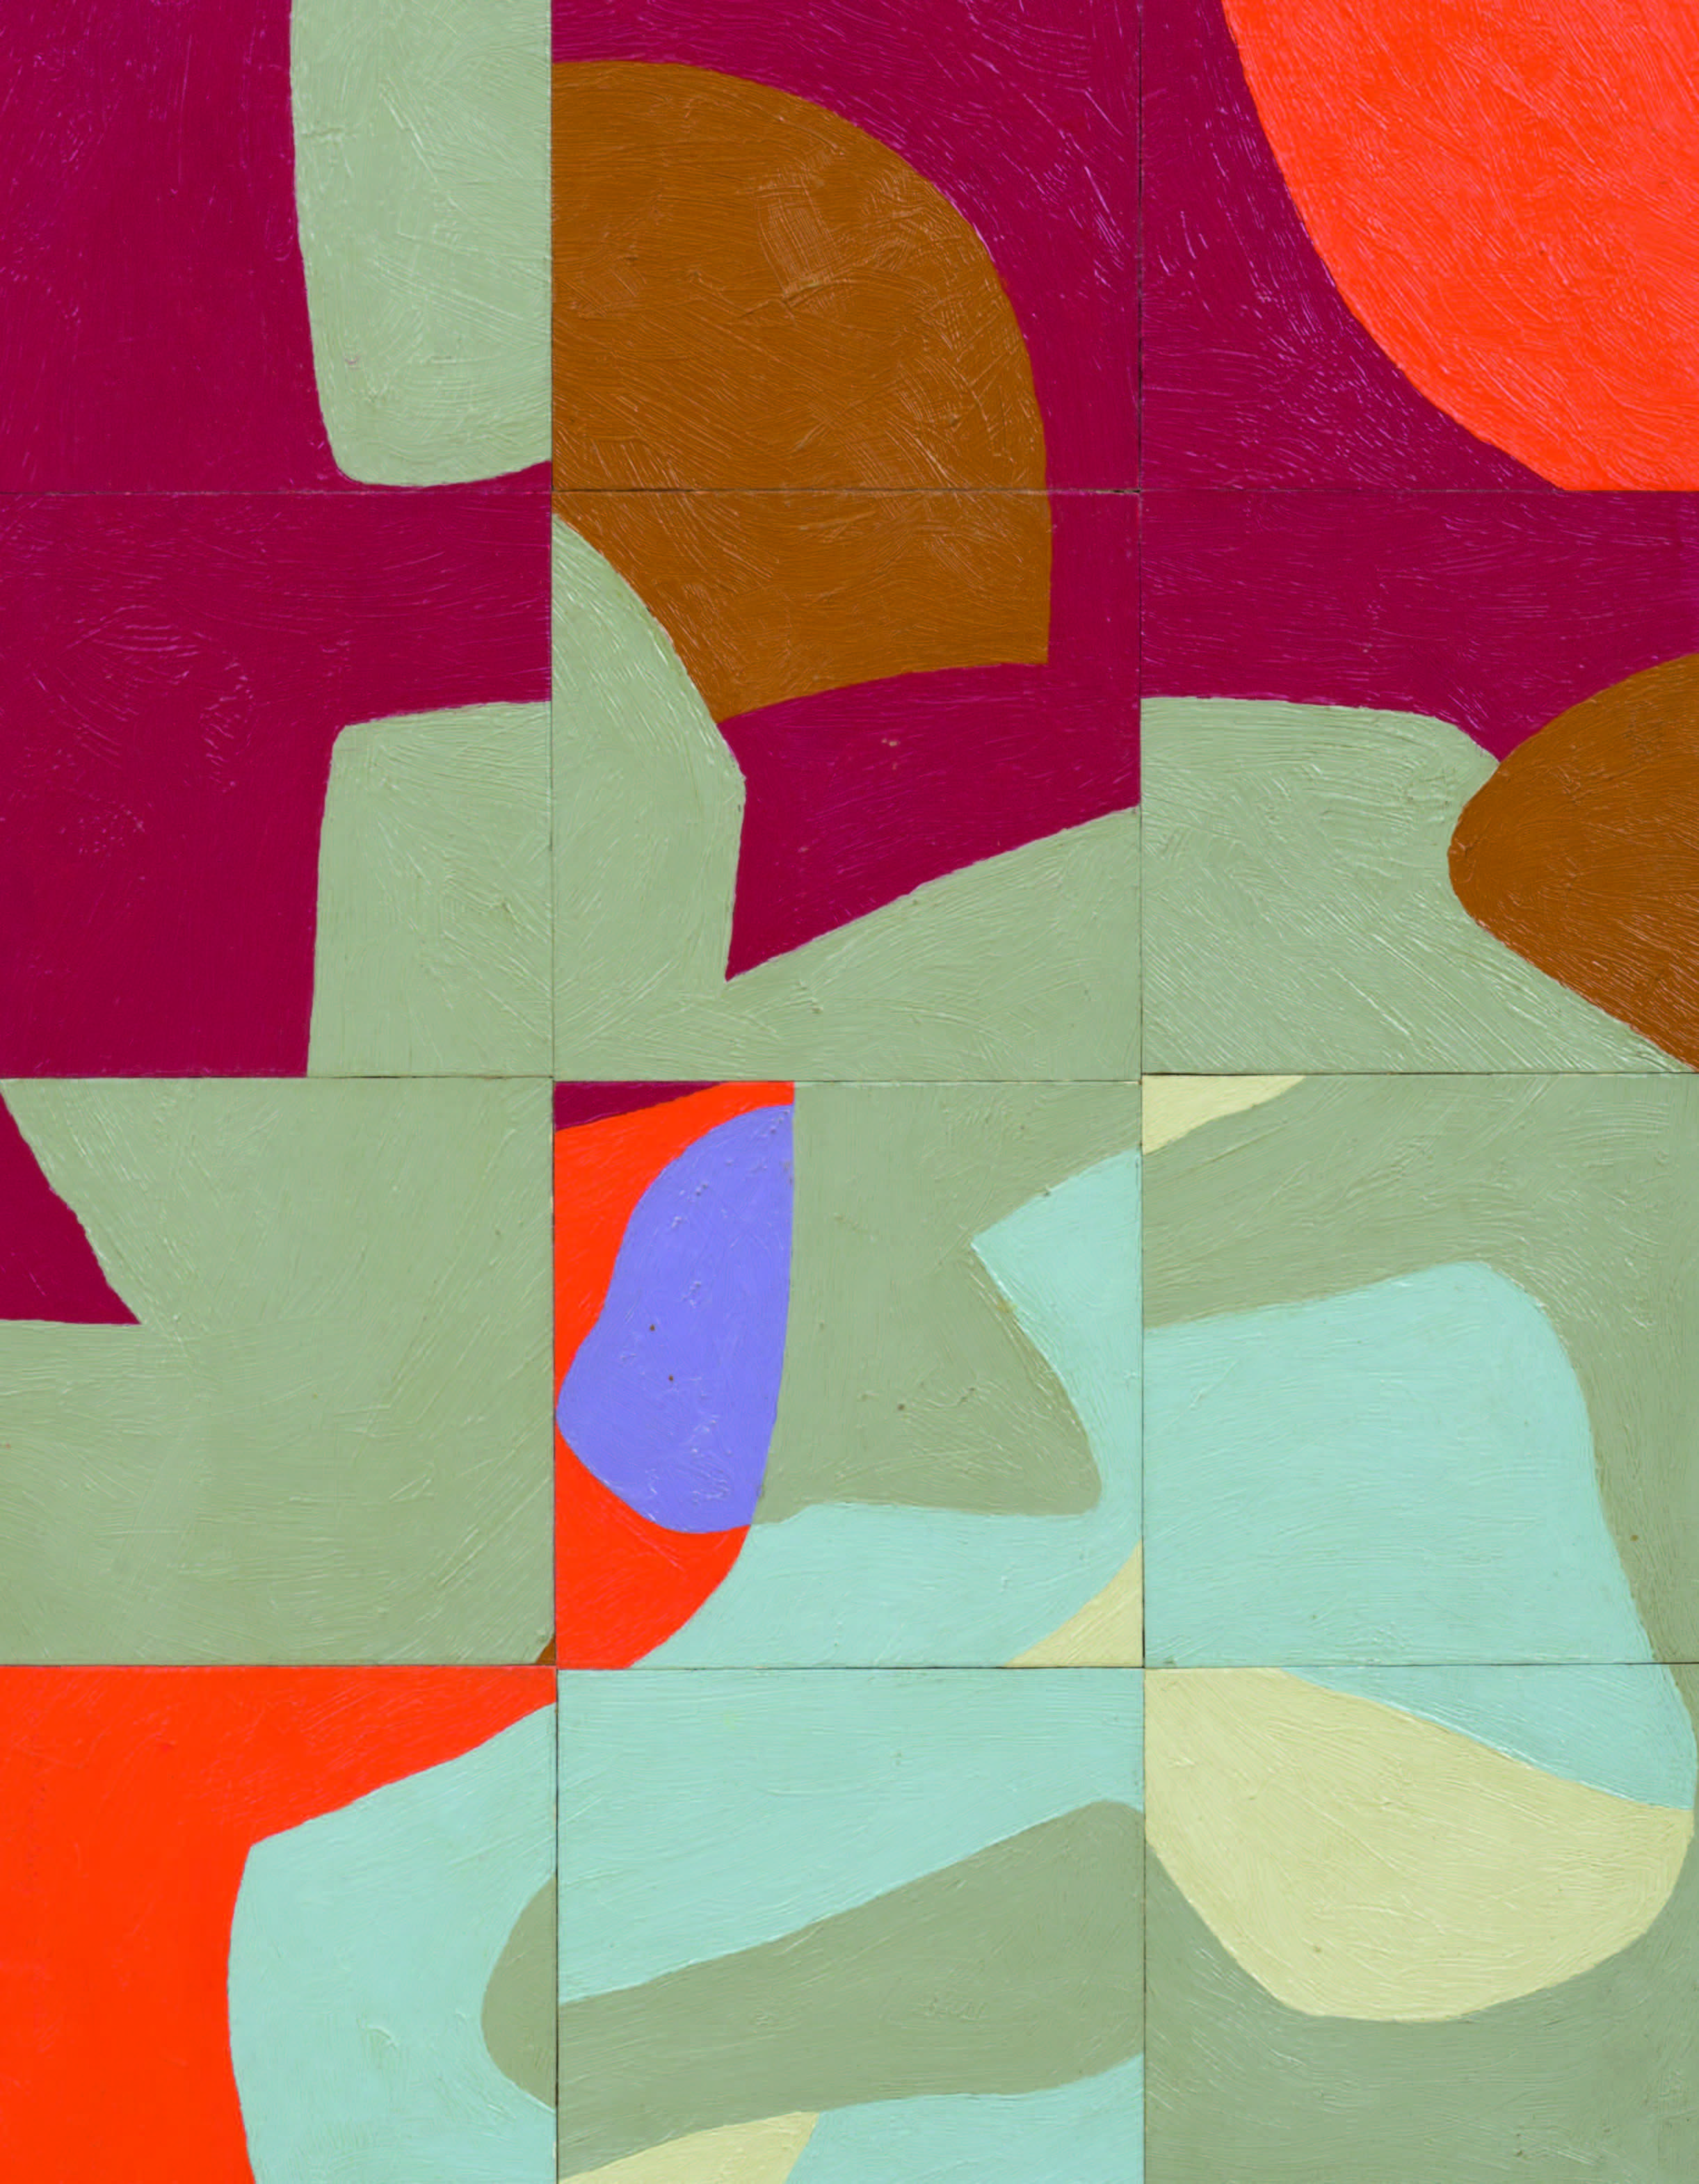 Frederick Hammersley: Organics and Cut-ups 1963-1965, 12 September ...